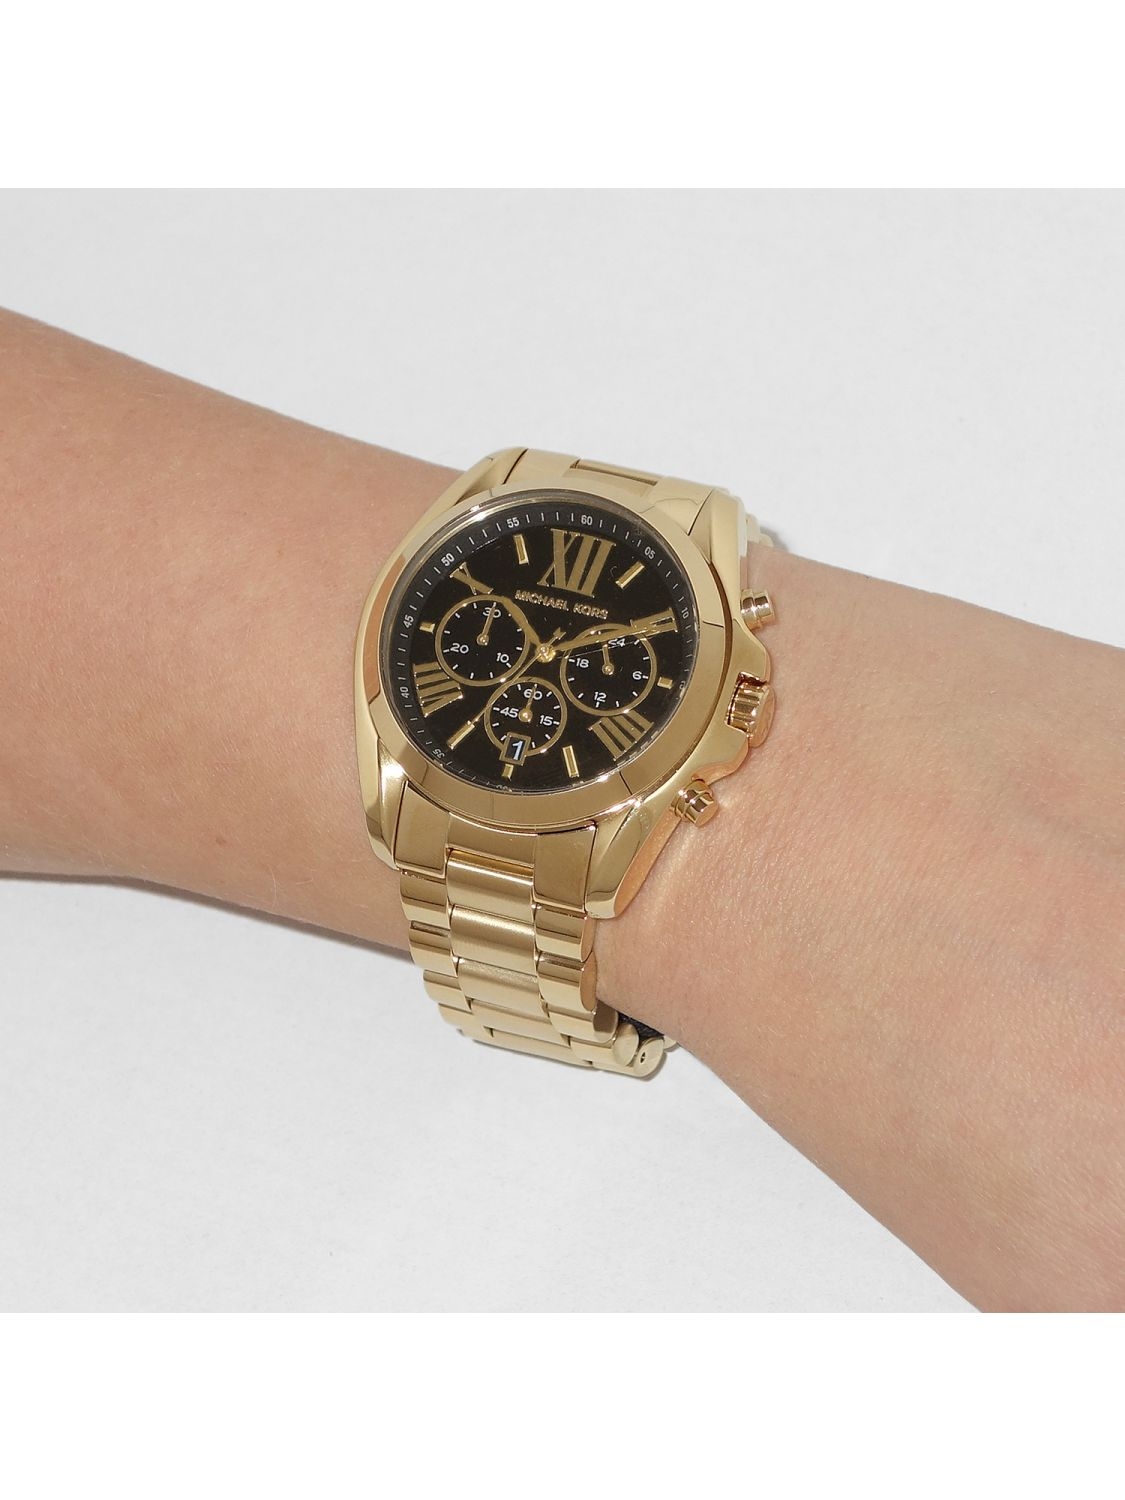 52a429df4 ... Michael Kors MK5739 Bradshaw Chronograph Ladies Watch Image 4 ...